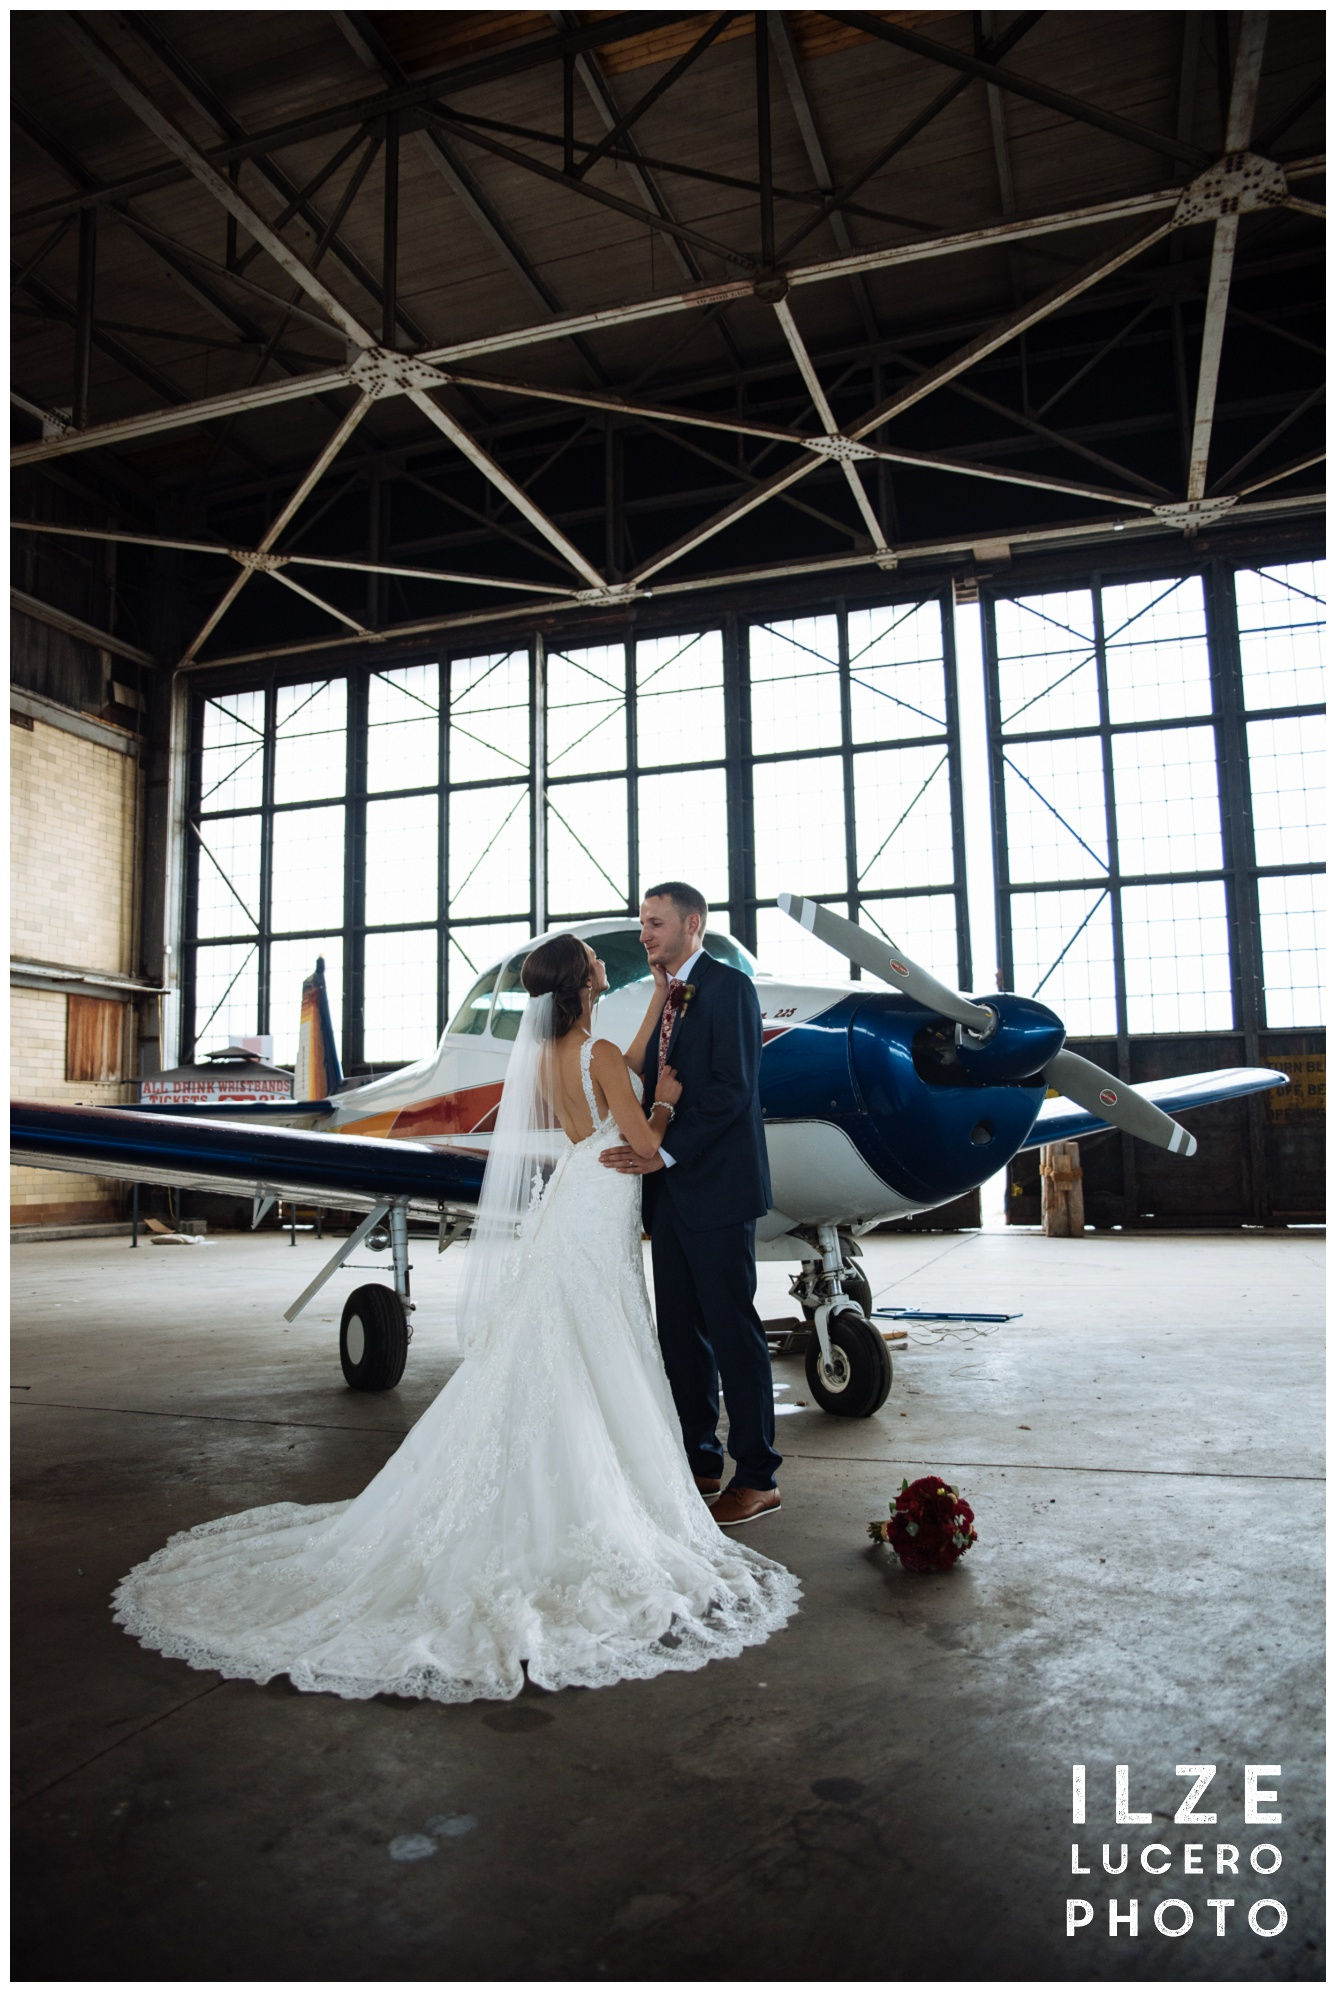 Airplane wedding theme inspiration